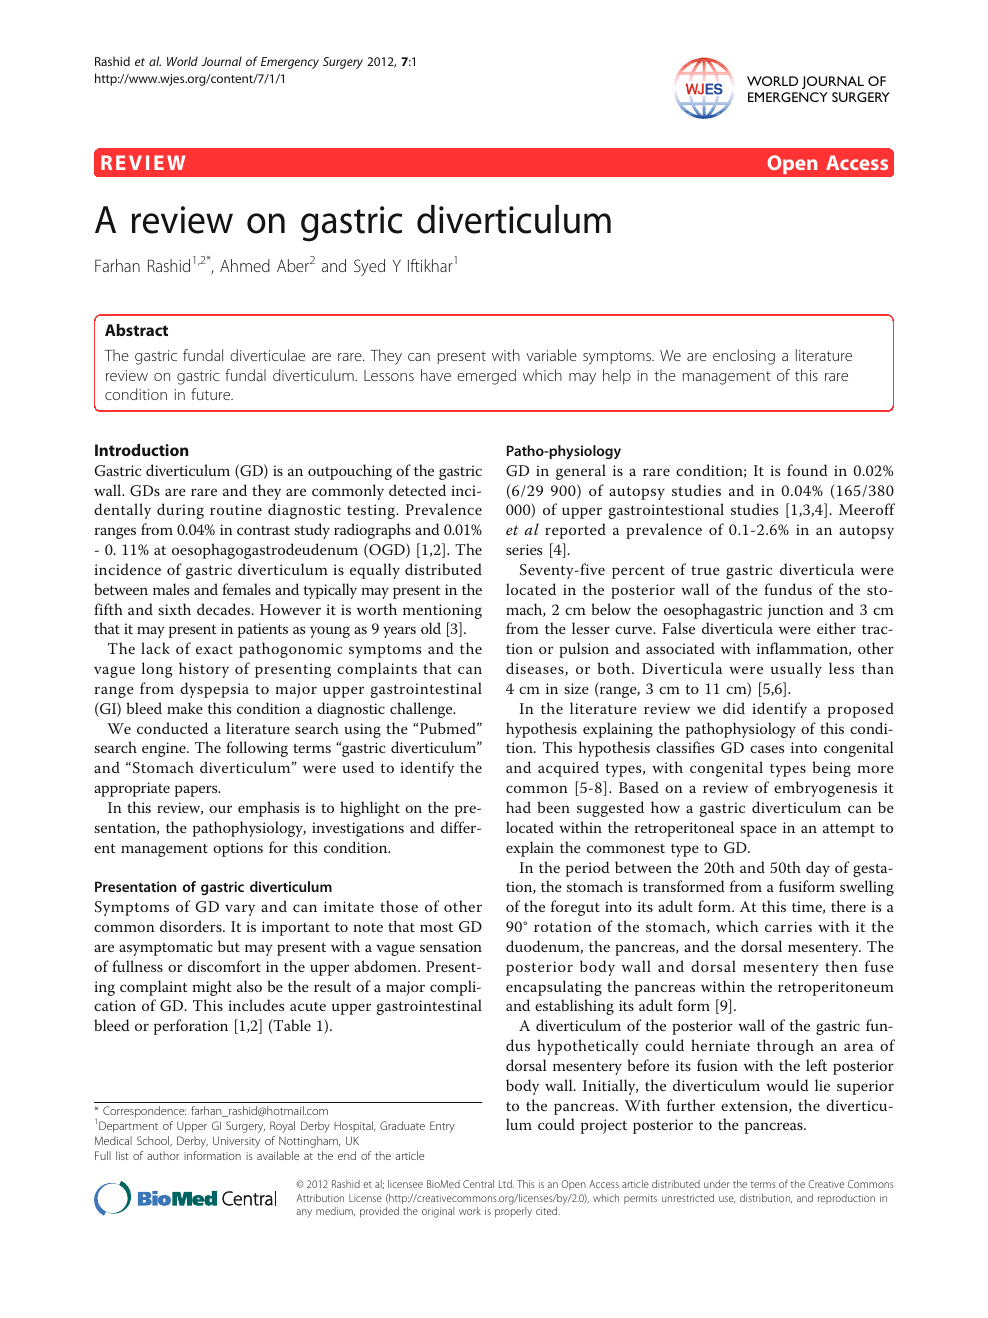 A review on gastric diverticulum – topic of research paper in